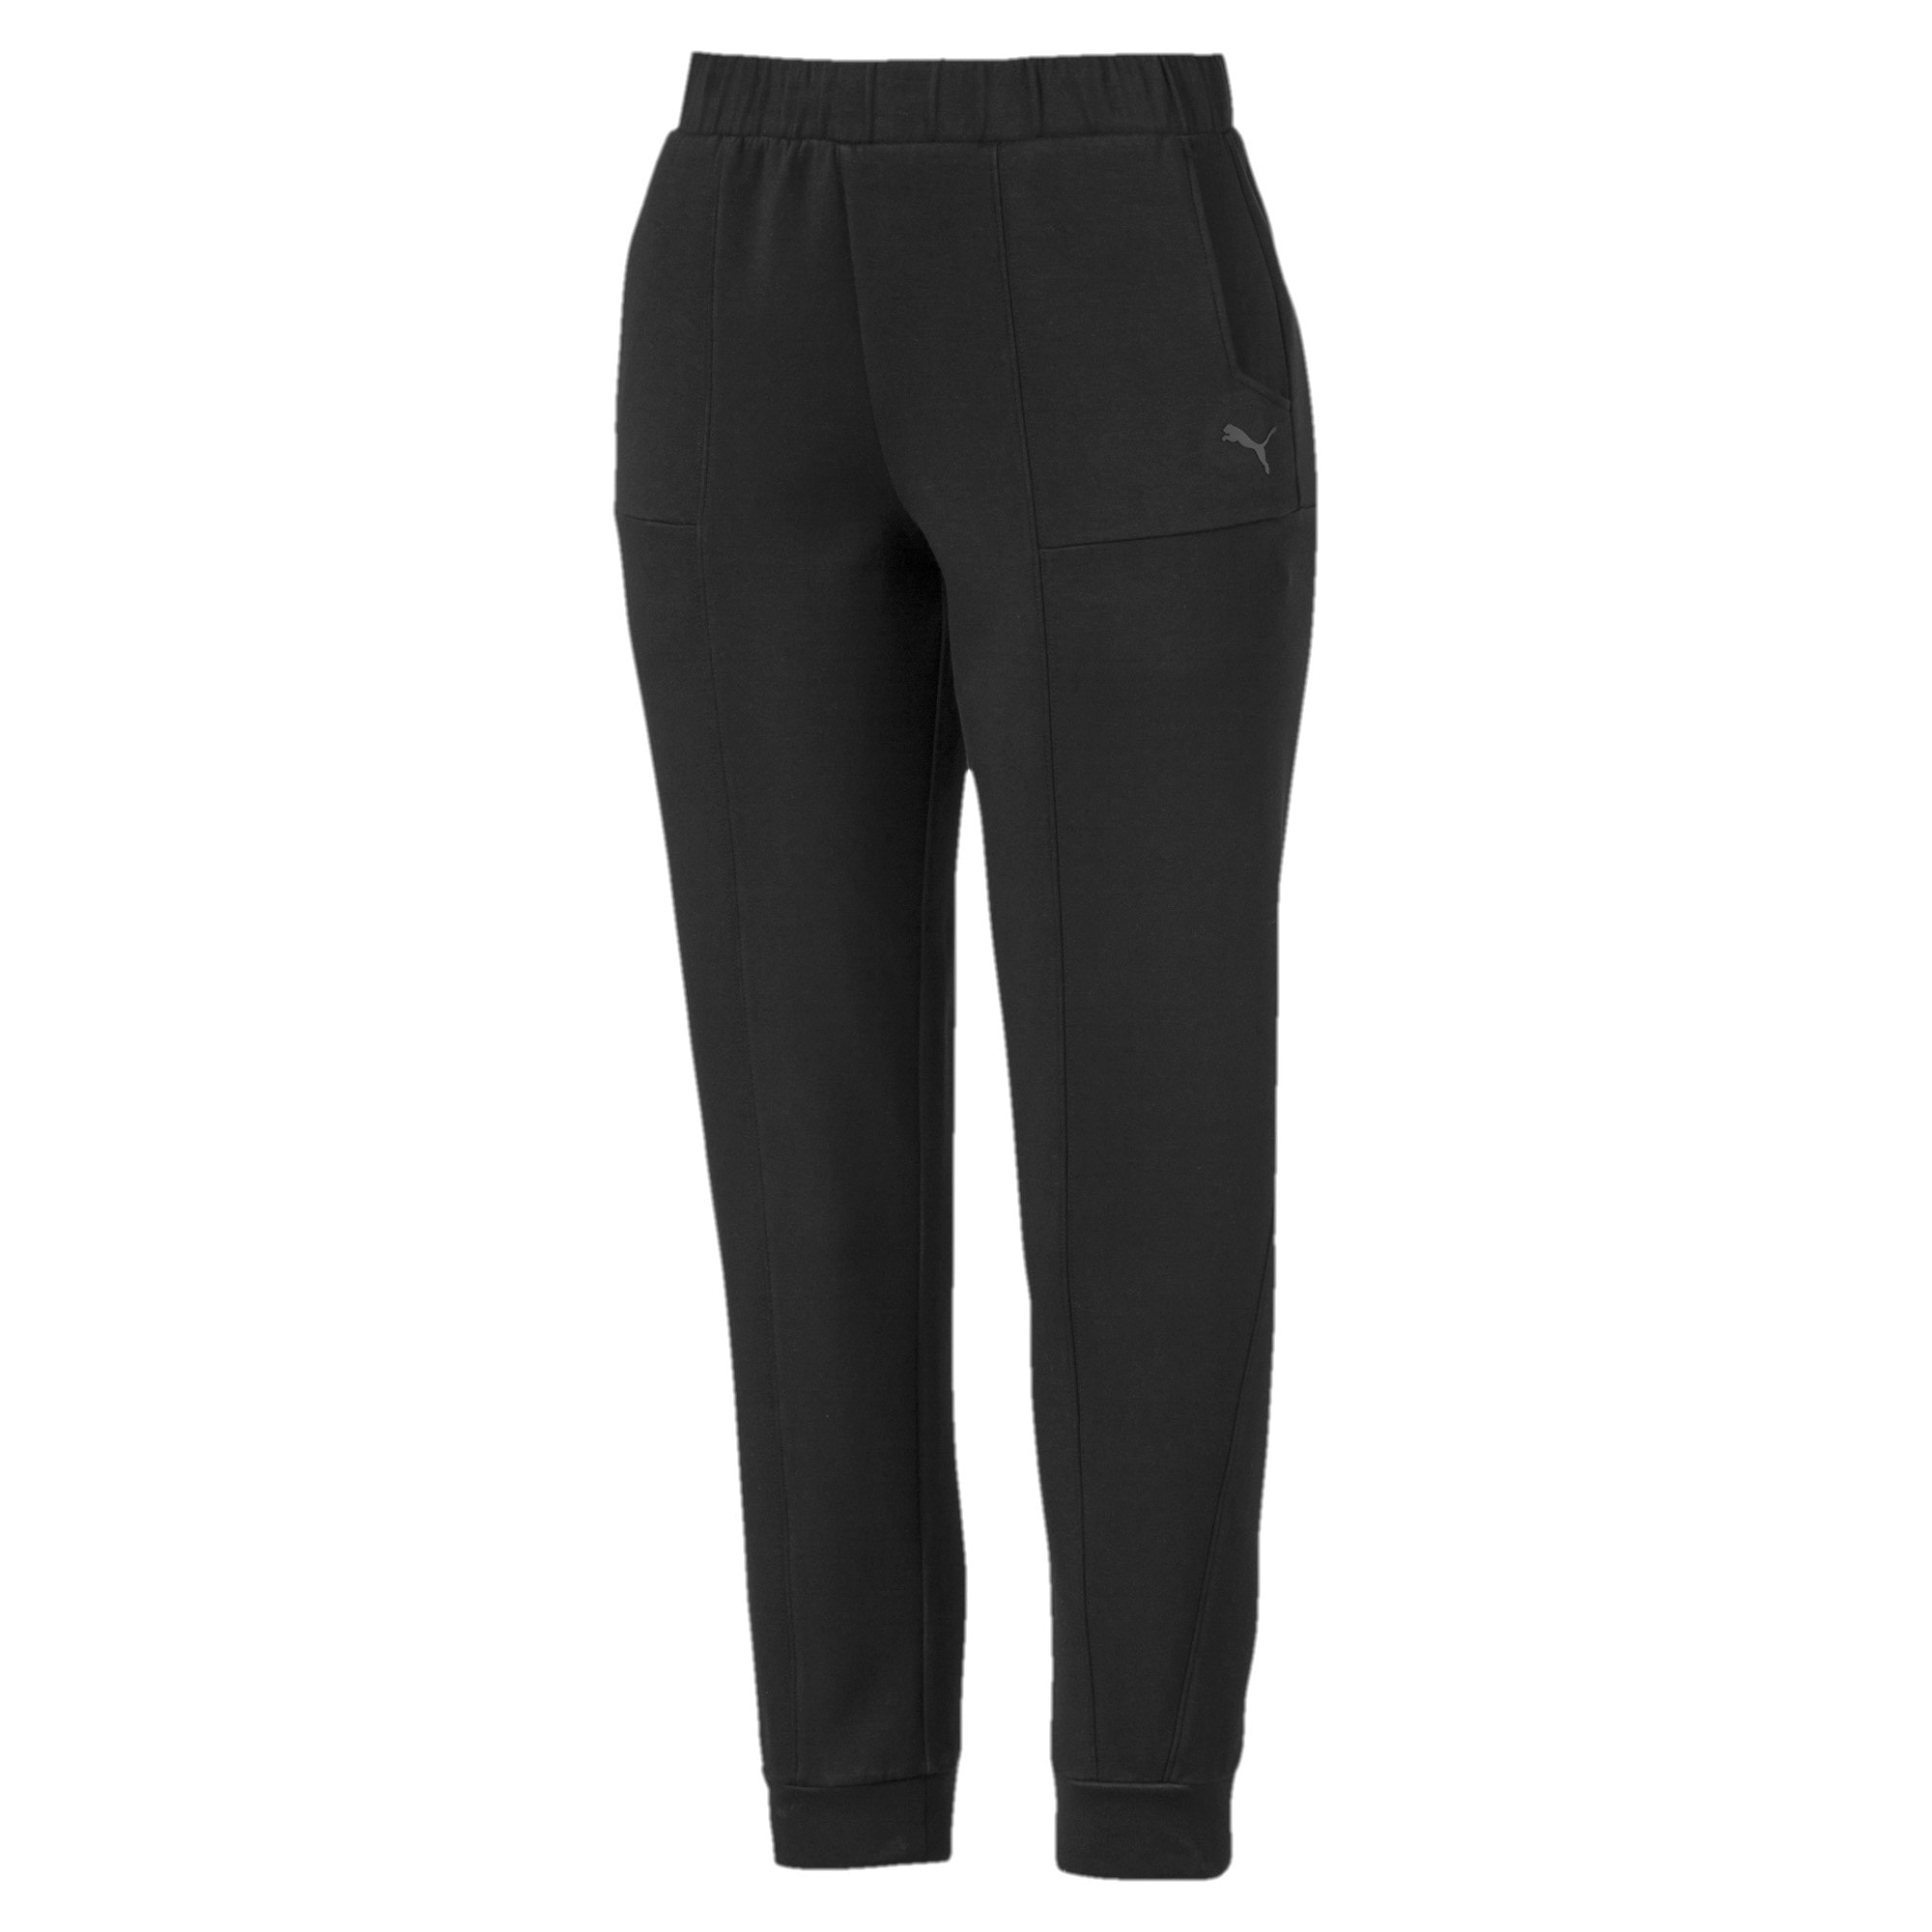 Thumbnail 4 of Pantaloni della tuta Ferrari donna, Puma Black, medium